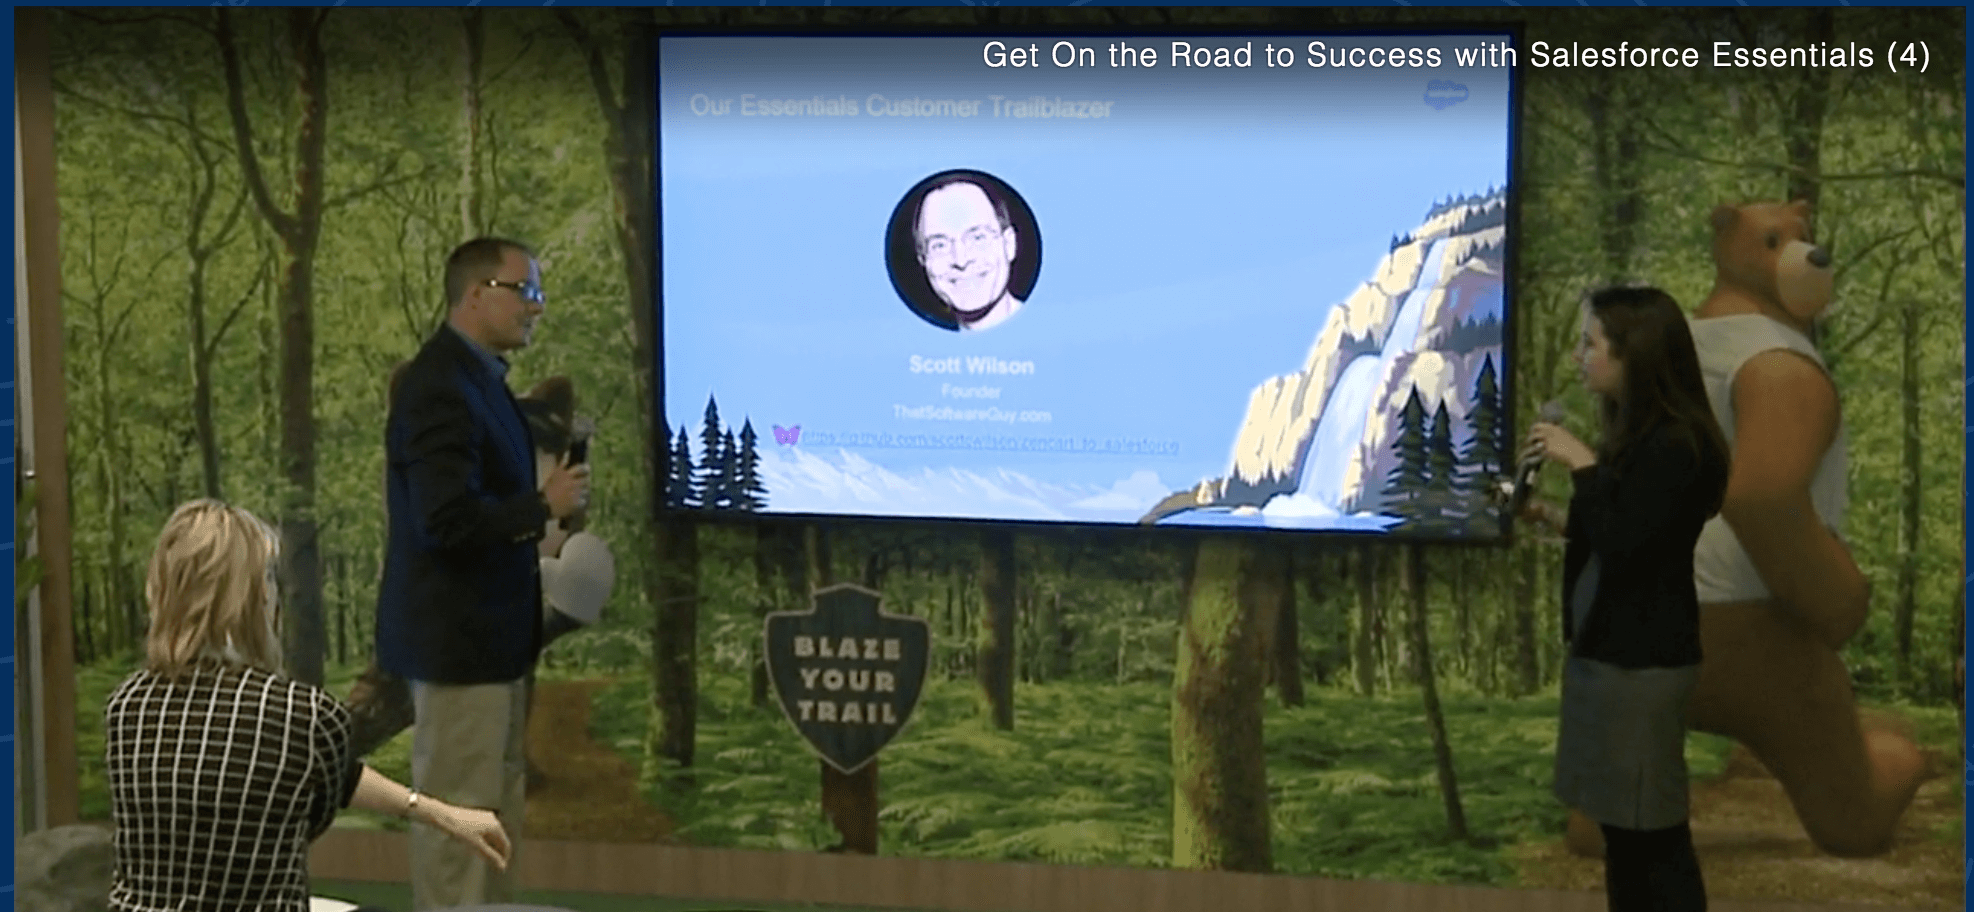 That Software Guy speaks at Dreamforce 2018